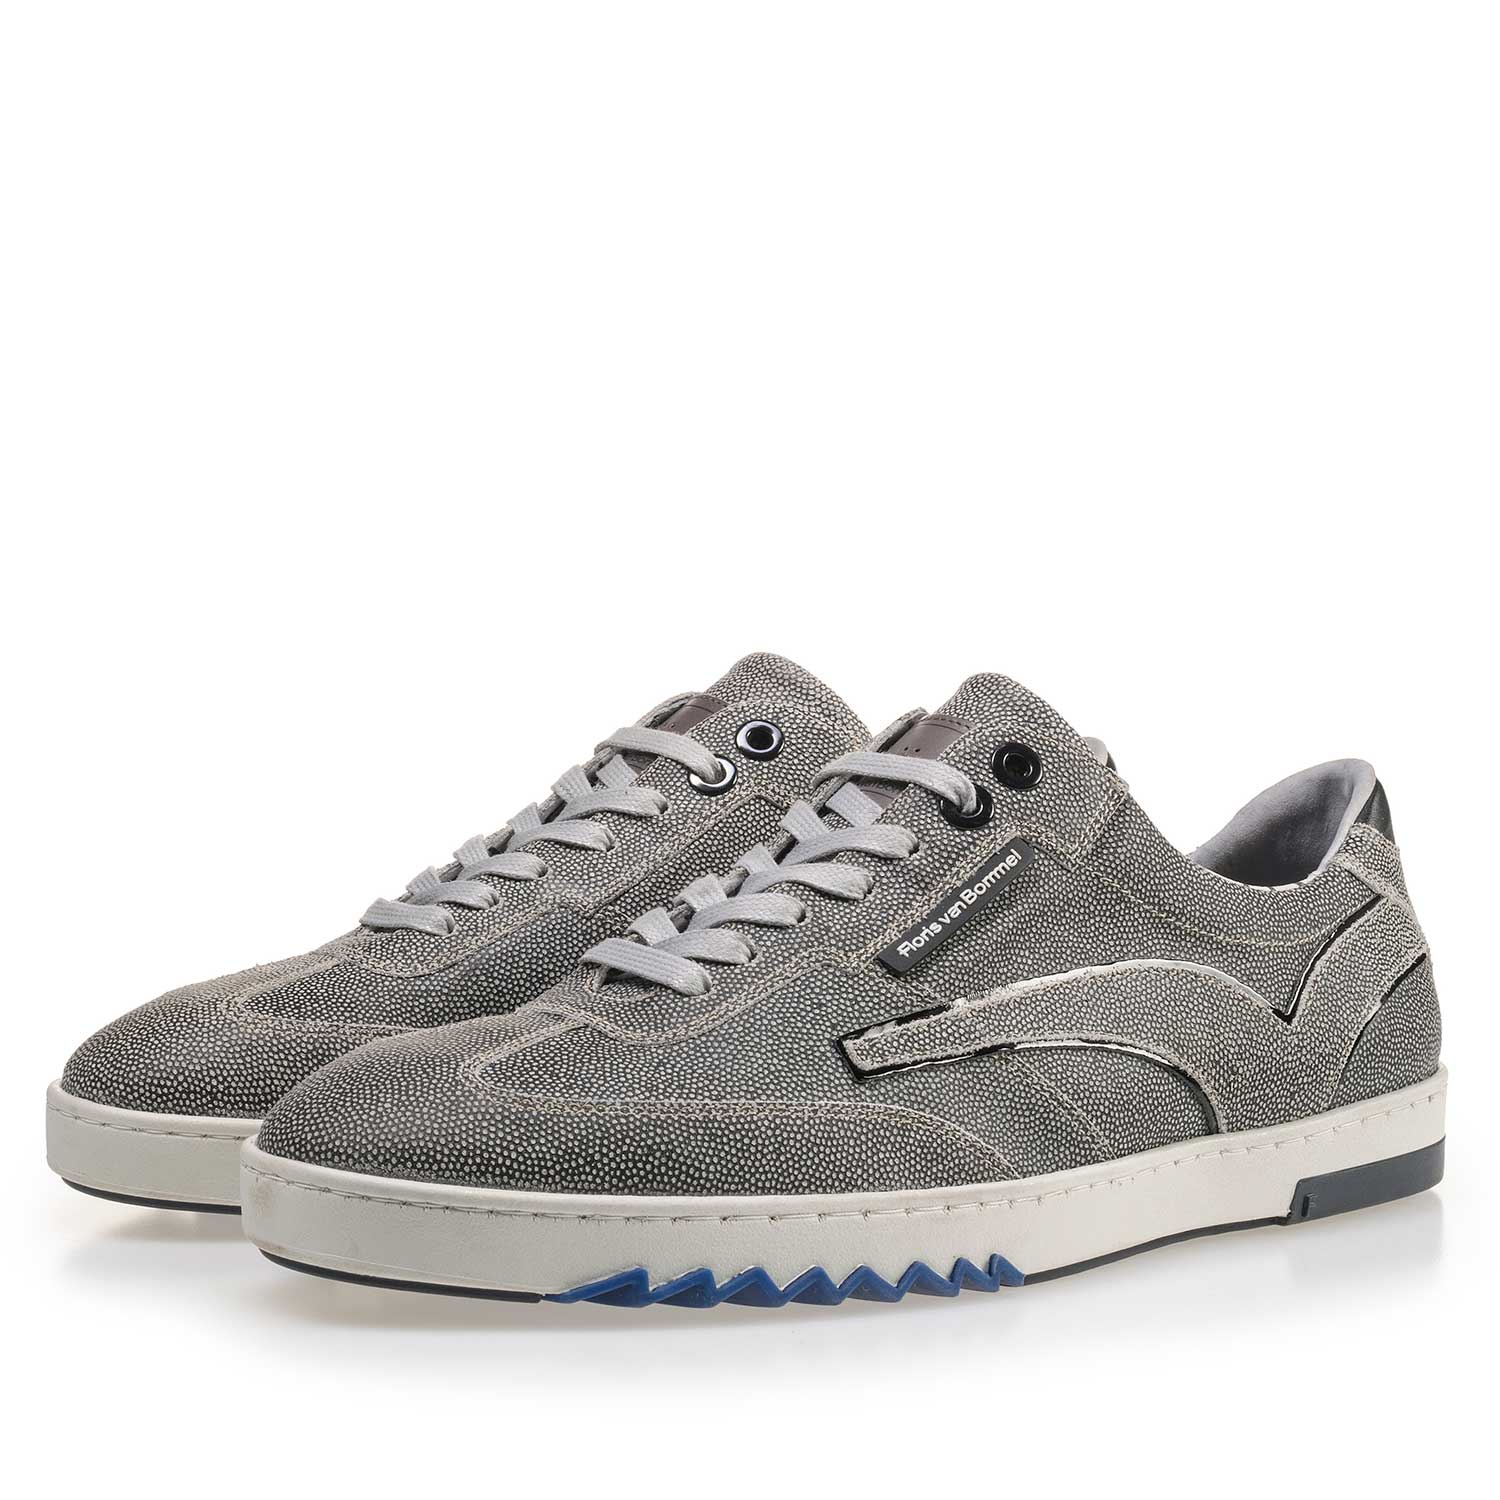 16074/28 - Grey suede leather sneaker